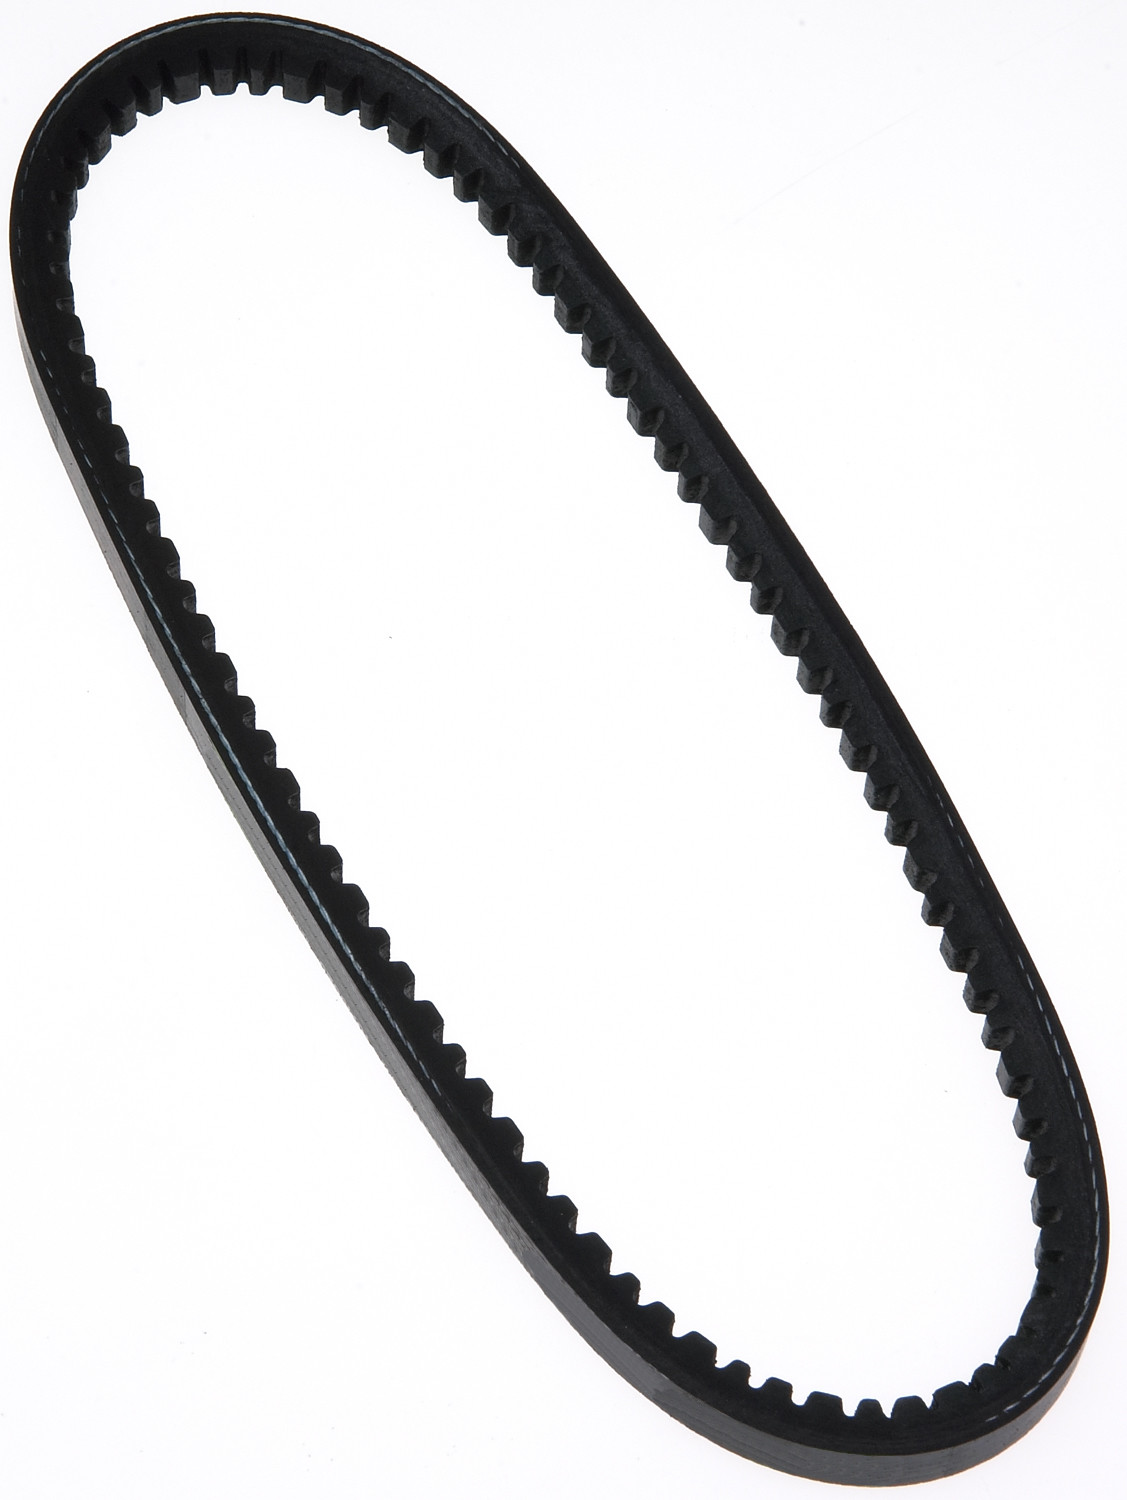 ROADMAX - High Capacity V-belt(standard) - RMX 17480AP